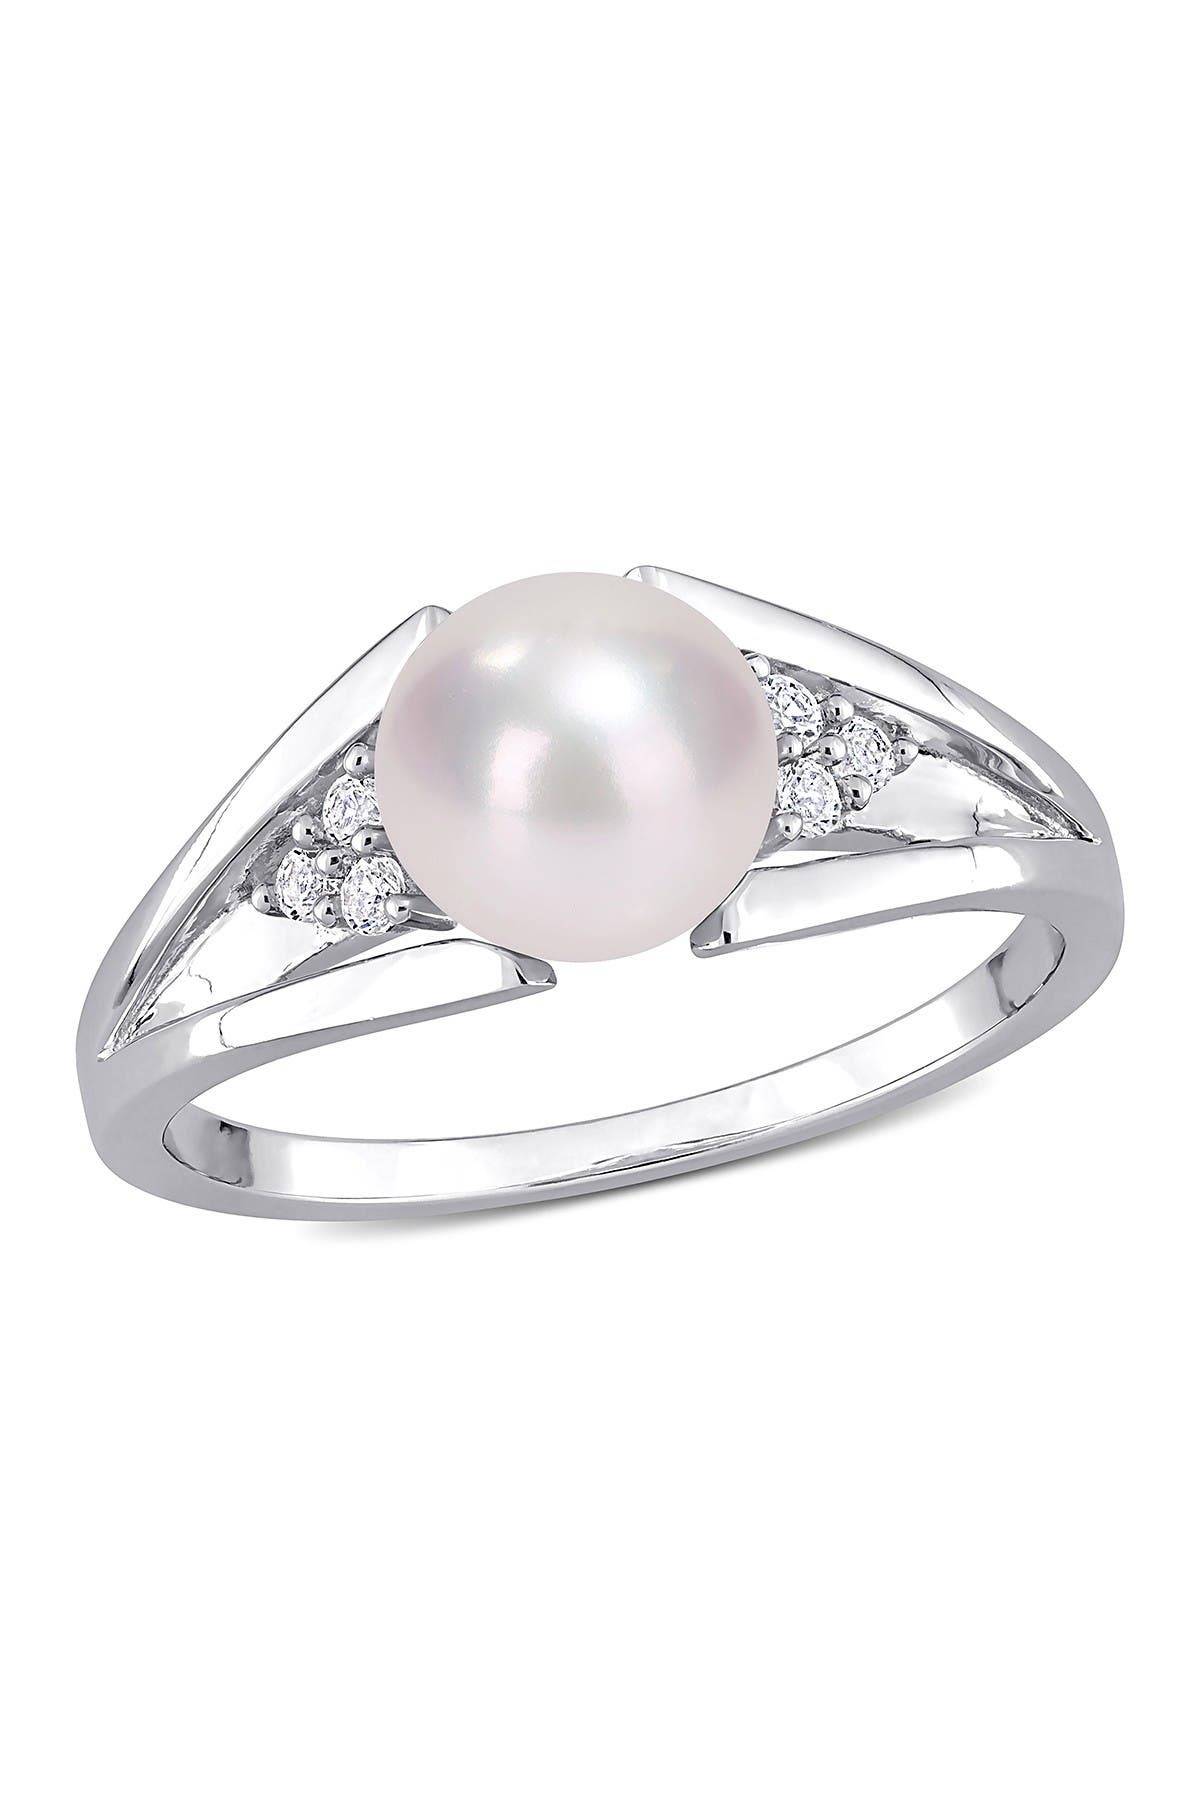 Image of Delmar Sterling Silver 7.5mm Cultured Freshwater Pearl & Diamond Ring - 0.04 ctw